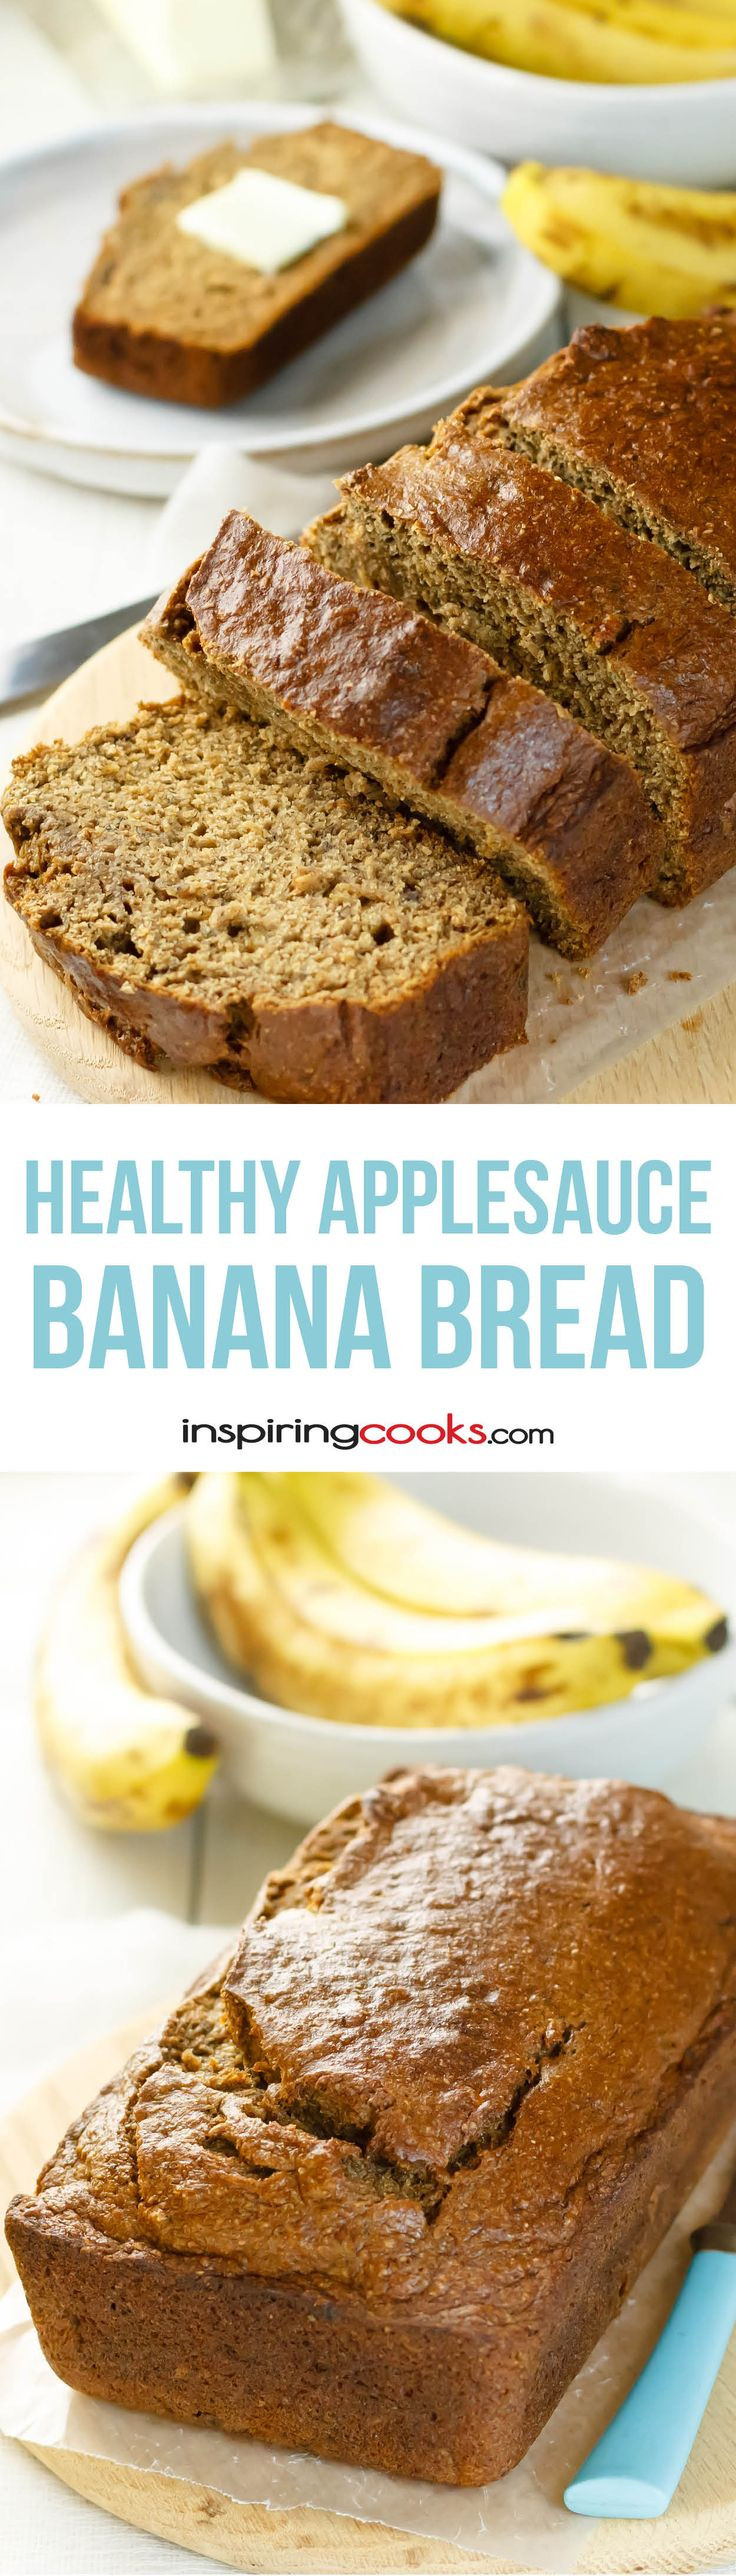 Is Applesauce Healthy  Check out Healthy Banana Bread with Applesauce It s so